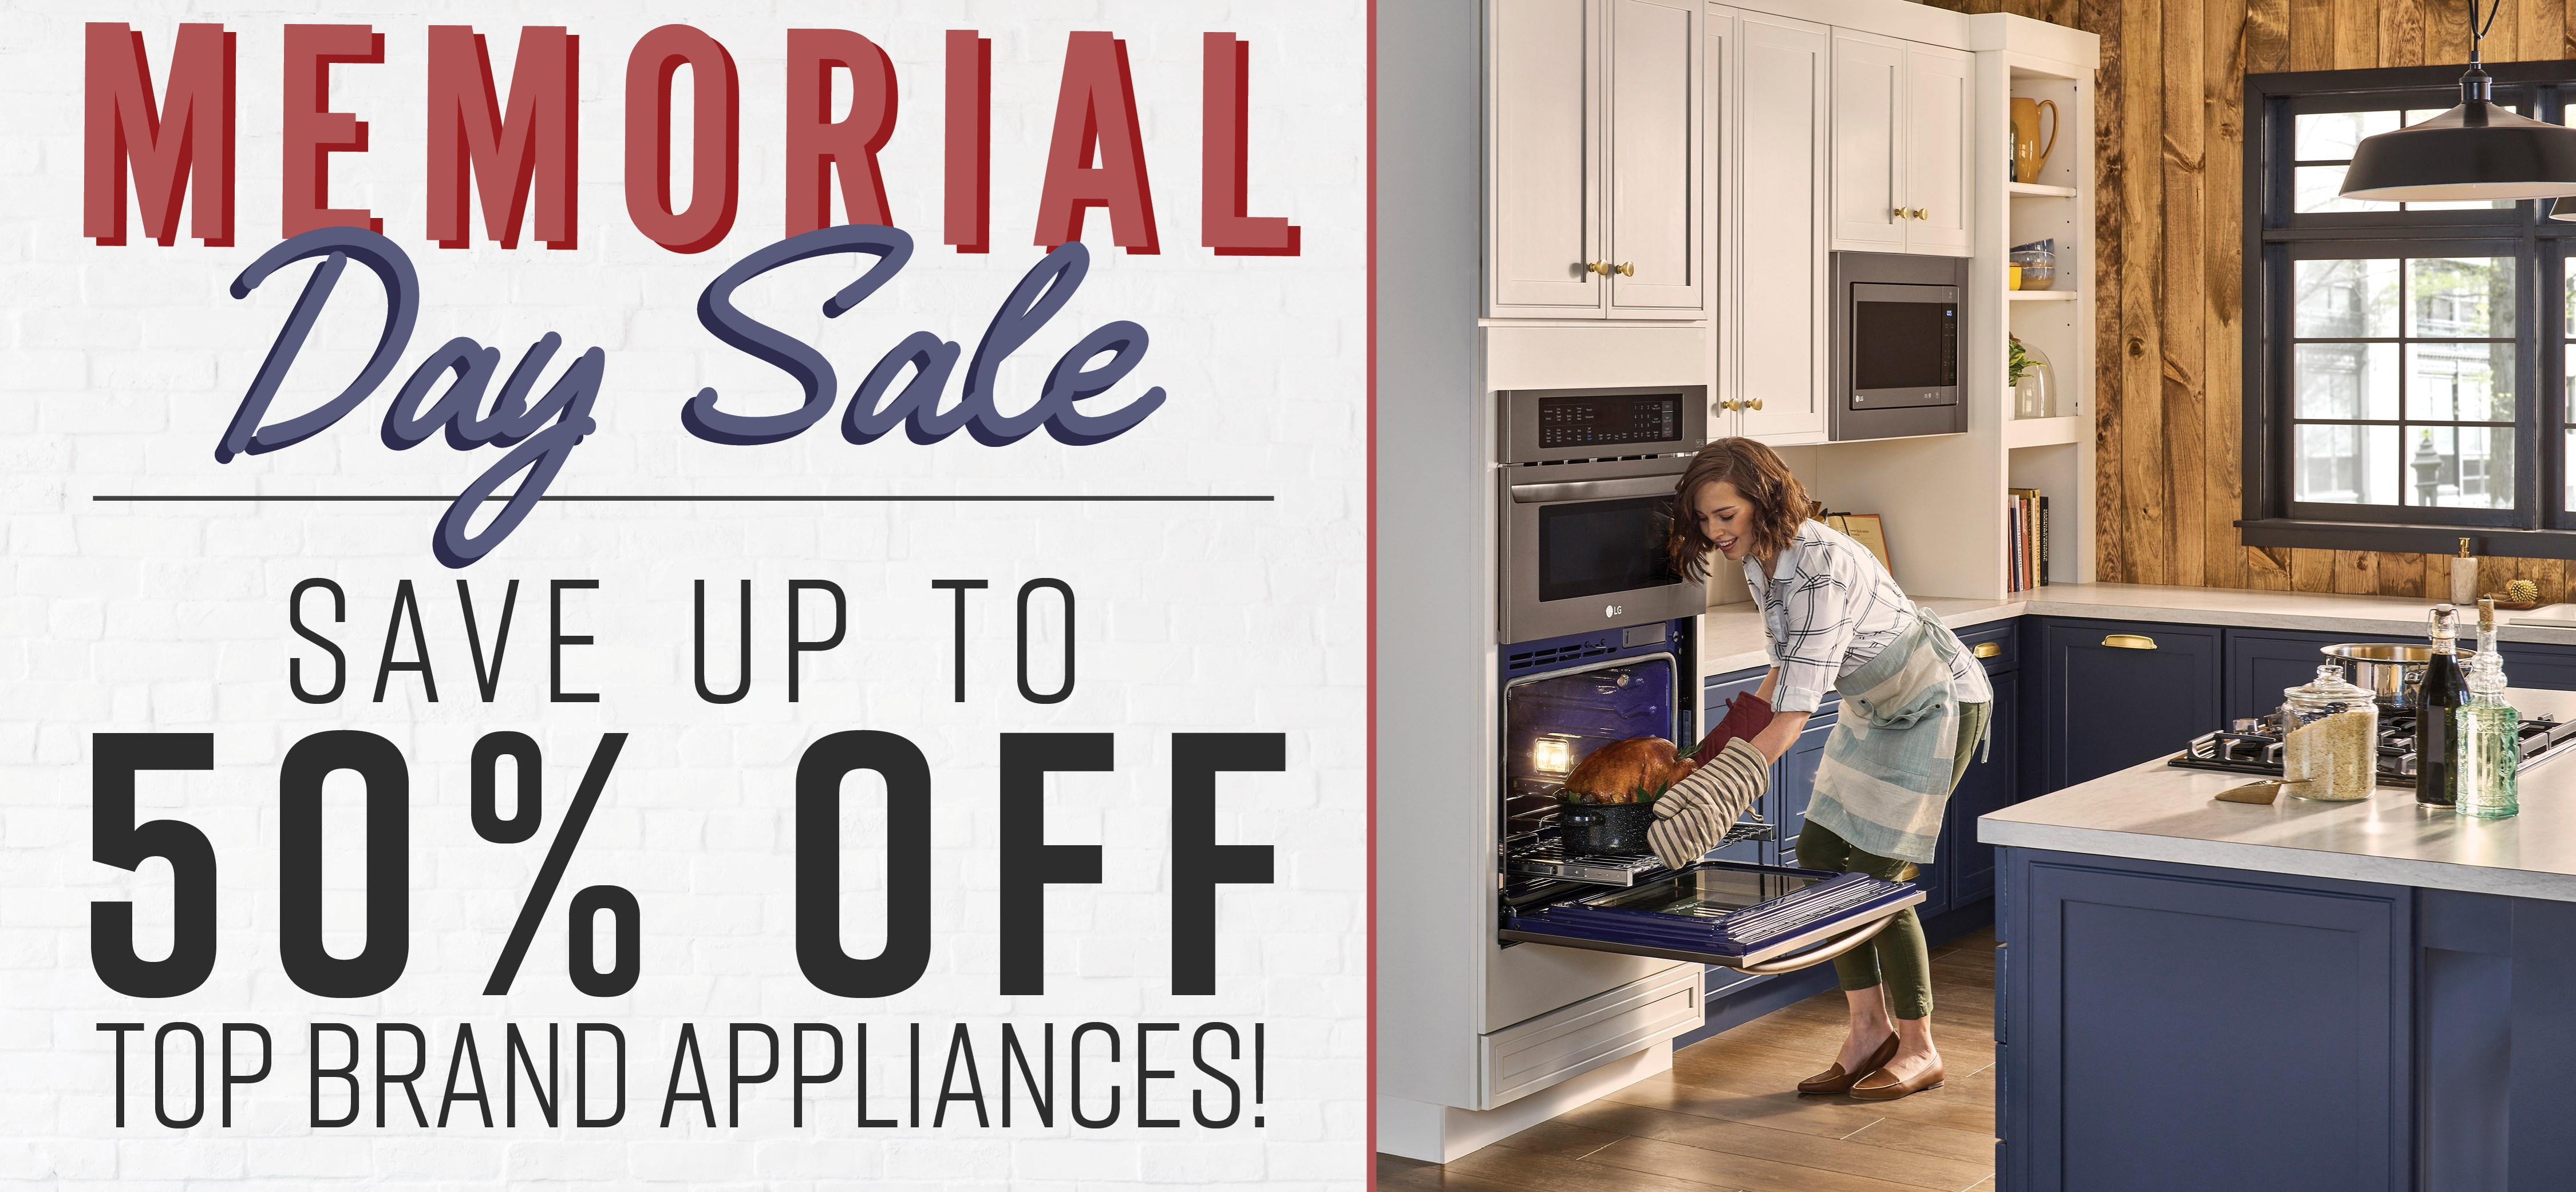 Furniture & ApplianceMart Memorial Day Sale